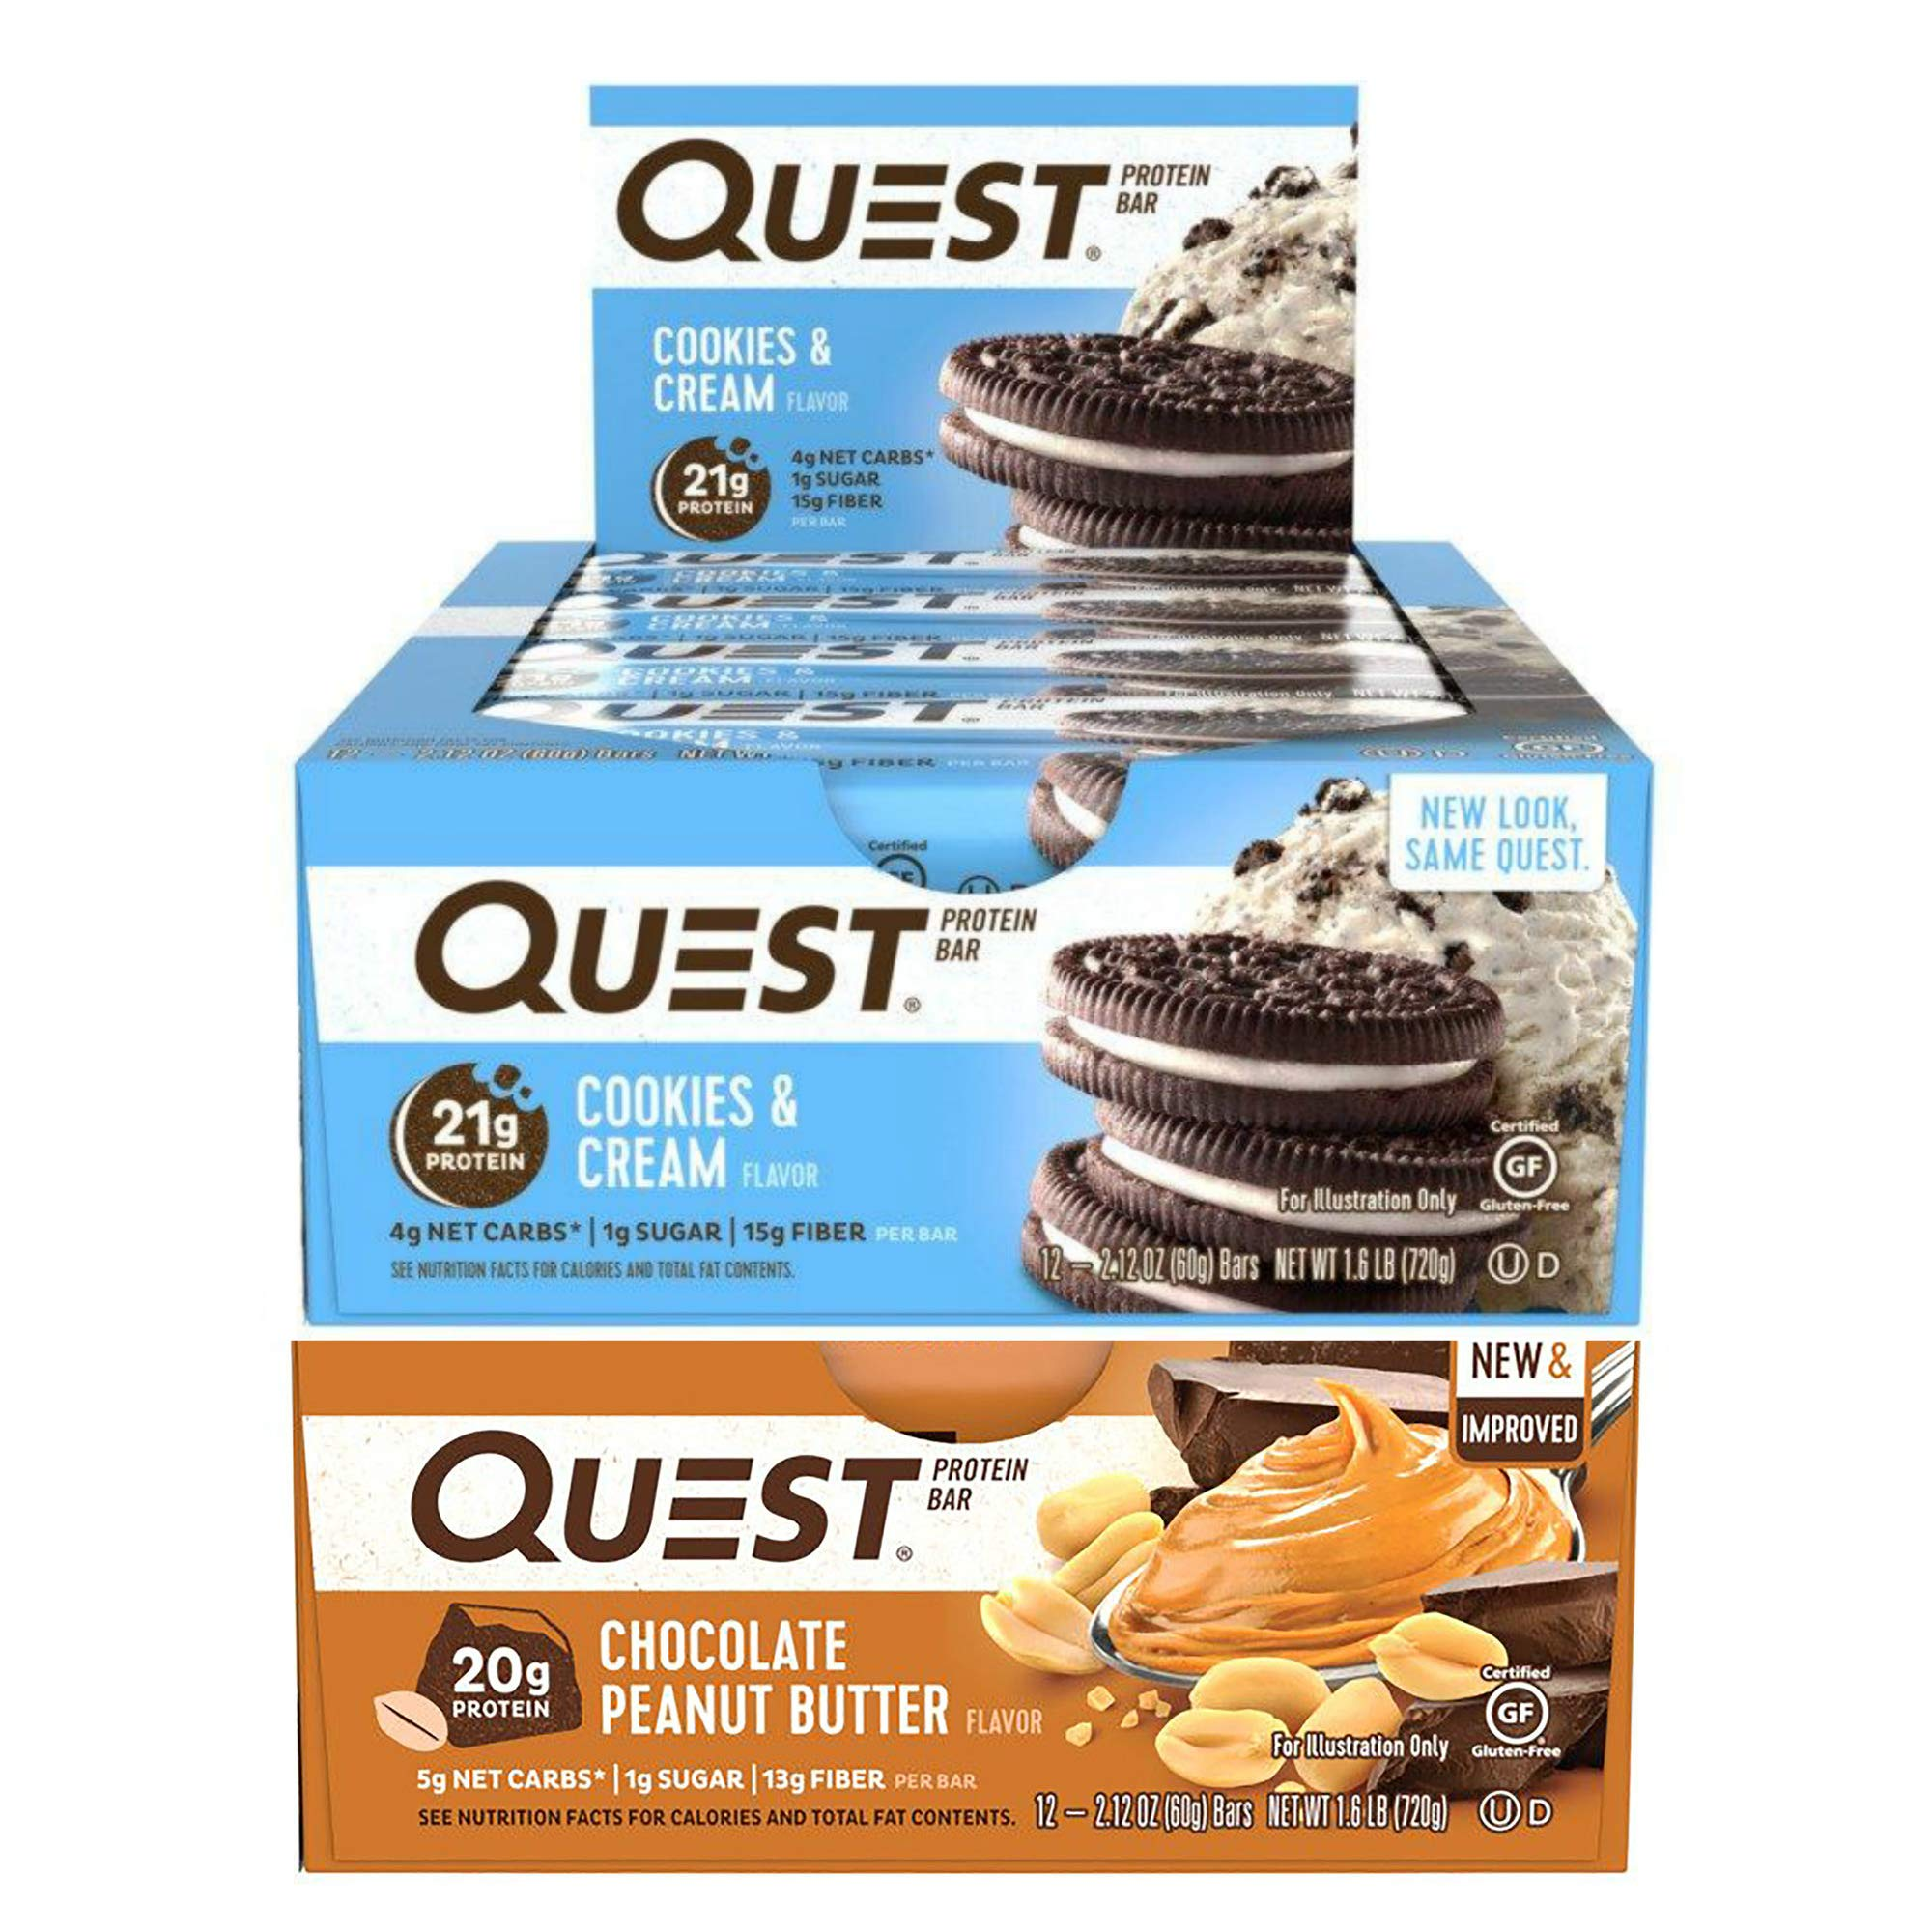 Quest Nutrition Protein Bar PB Cookie Mix-Up (Cookies + Cream and Chocolate Peanut Butter). Low Carb Meal Replacement Bar w/ 20g+ Protein. High Fiber, Soy-Free, Gluten-Free (24 Count)